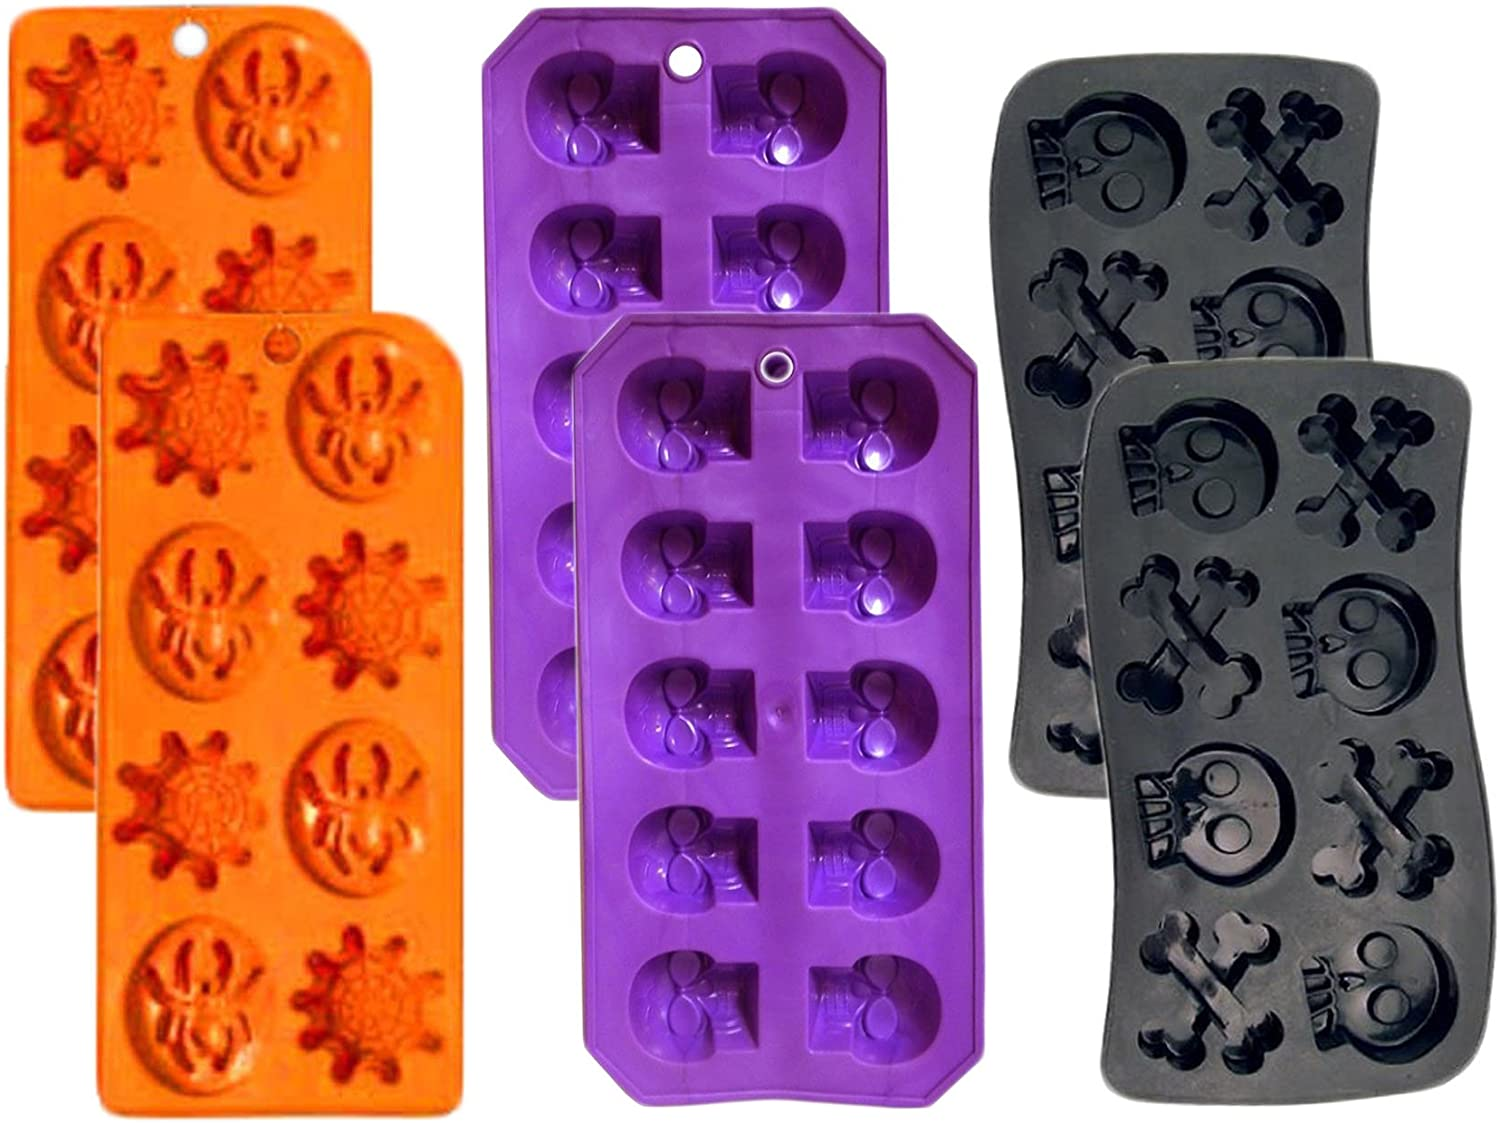 Set of 6 Spooky Halloween Shaped Ice Cube Tray/Food Molds - (2) skull and bones,(2) spider and webs,(2) skulls (6)